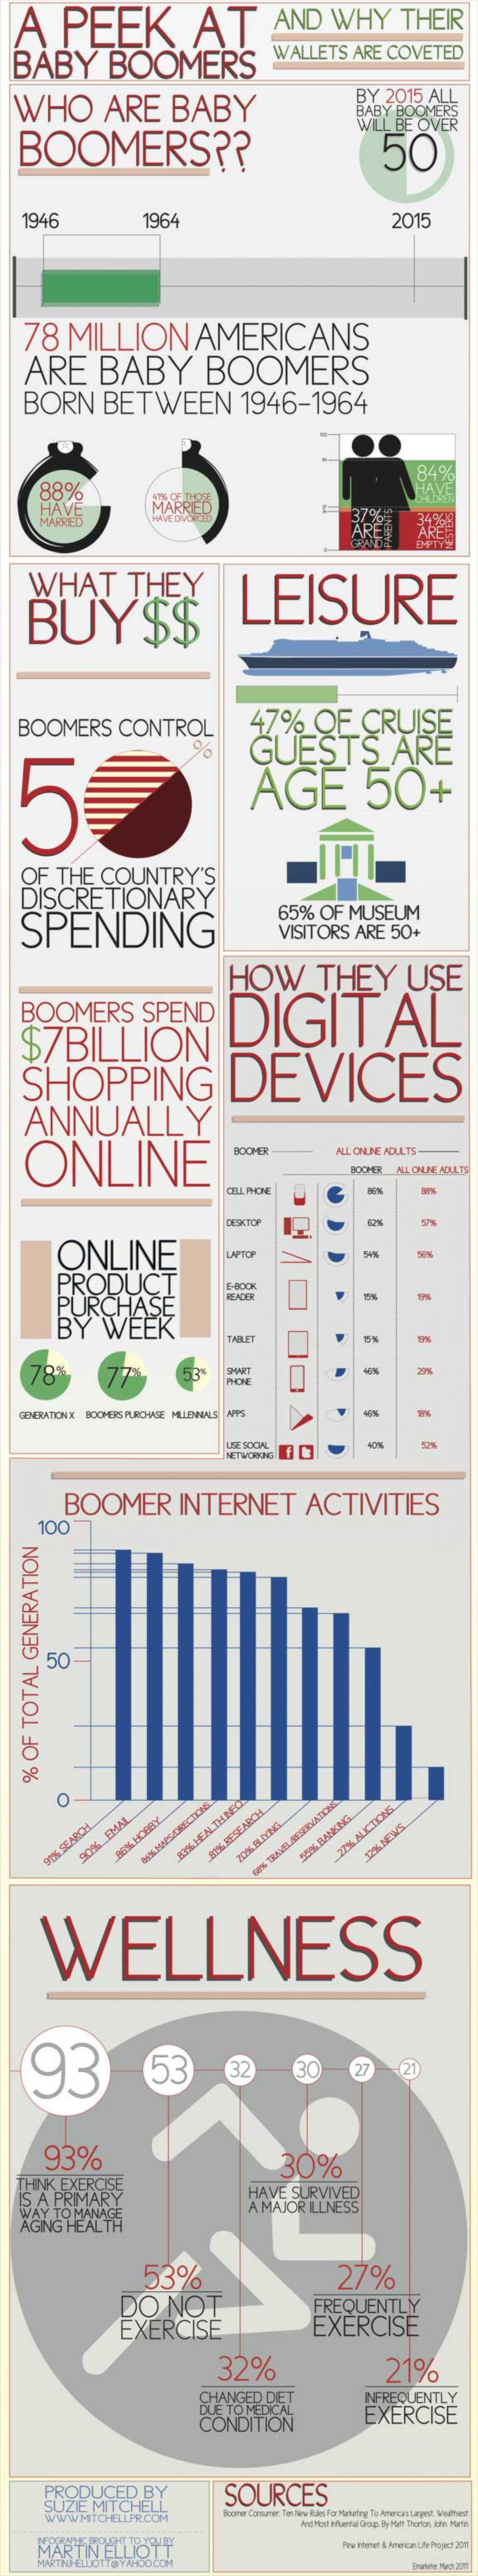 Baby Boomers & Online Spending Infographic